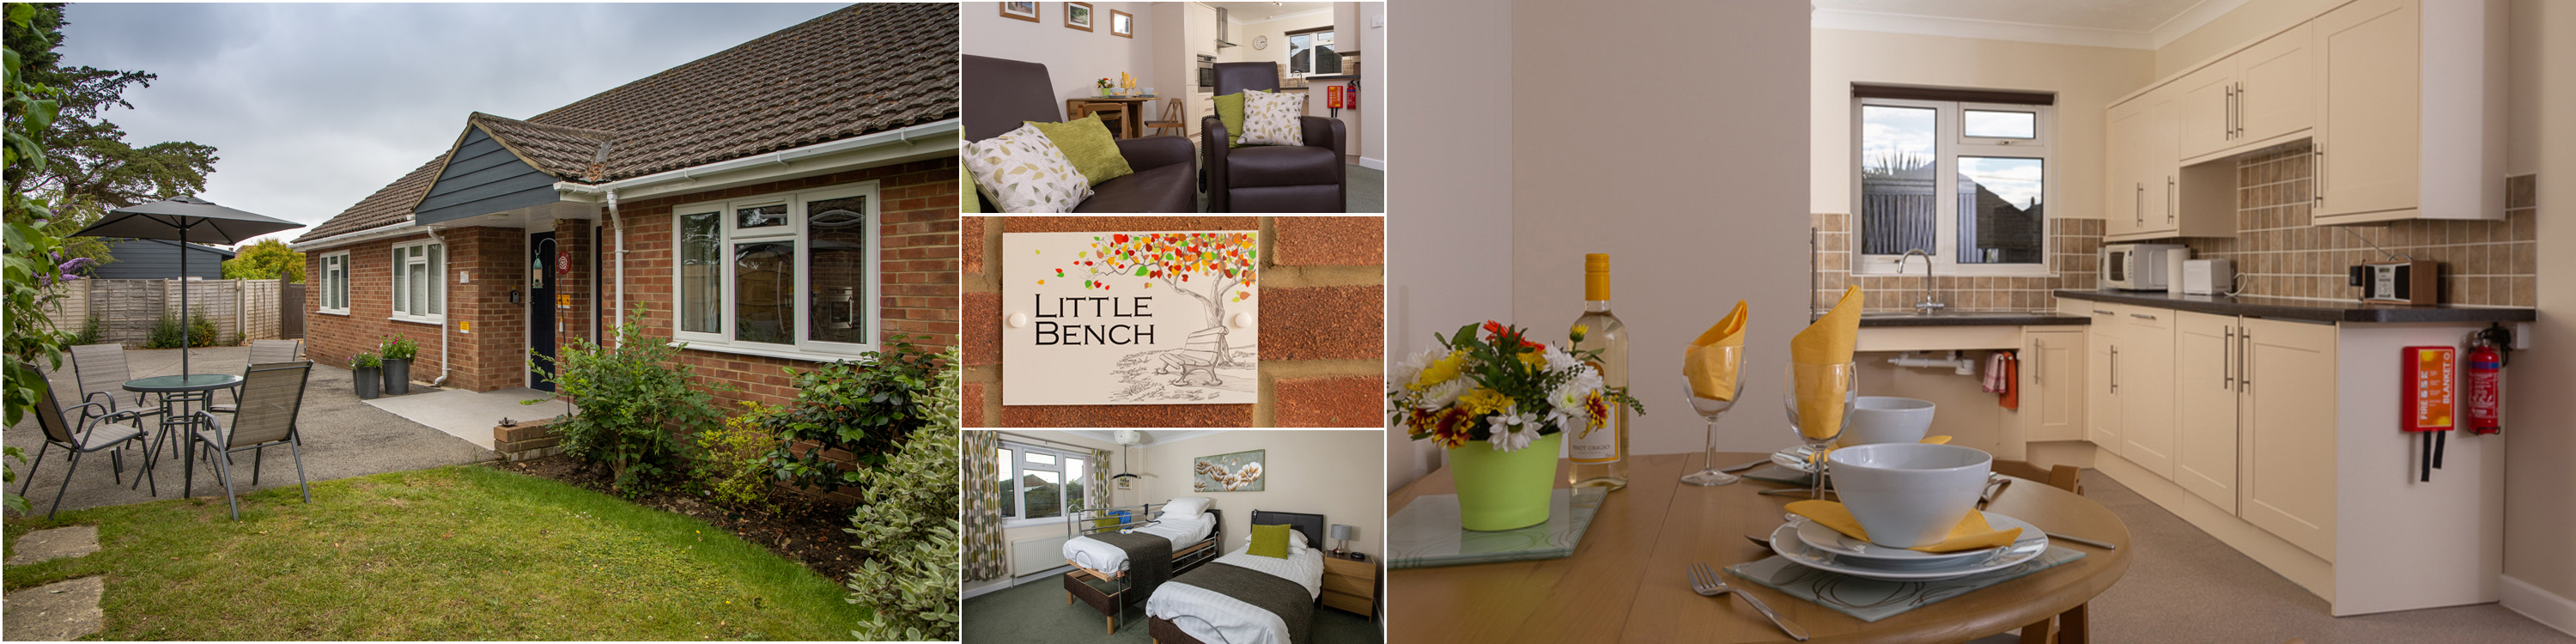 Little Bench - New Forest Accessible Accommodation